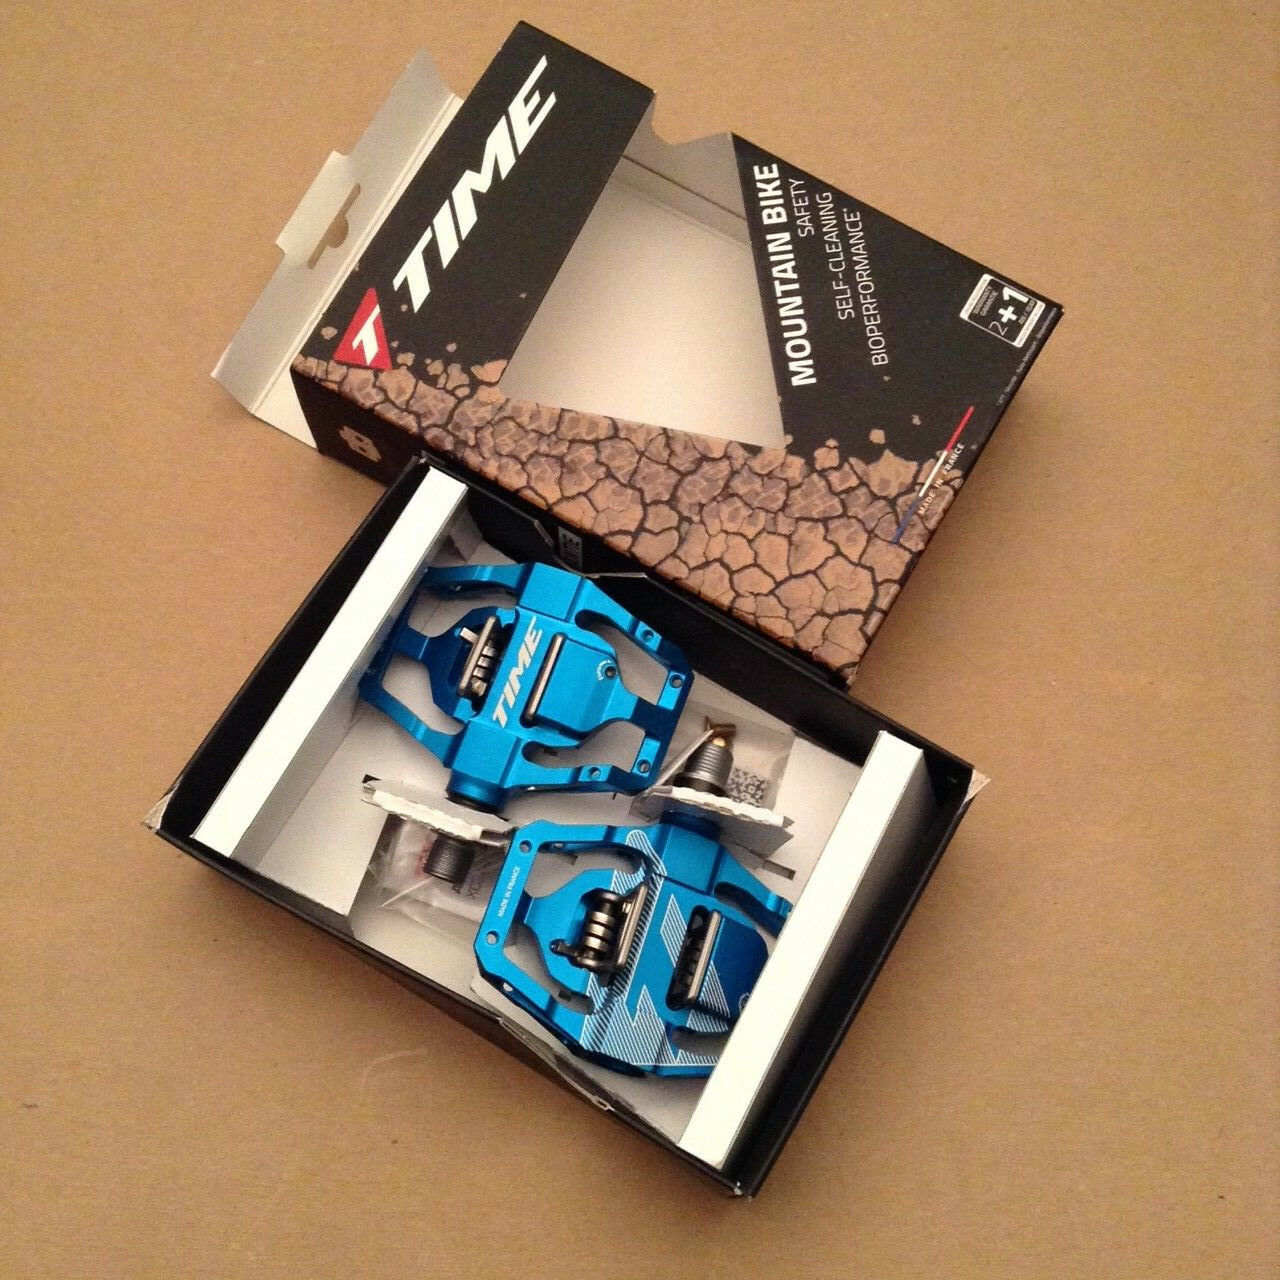 Time ATAC Speciale 12 Mountain bike pedals blu with Cleats New